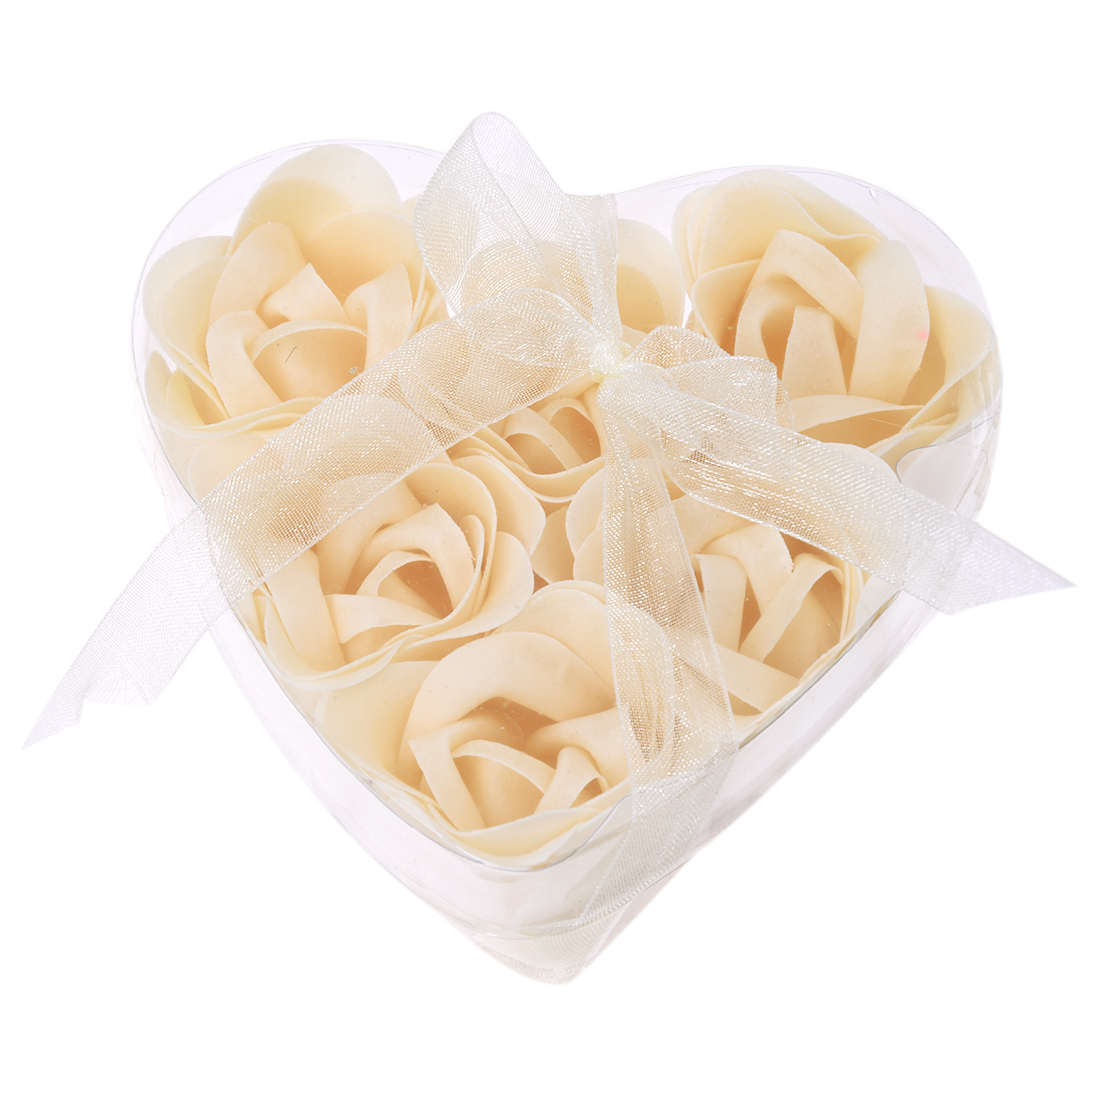 New 6 Pcs Bathing Shower Off White Rose Flower Bath Soap Petals W Heart Shaped Box